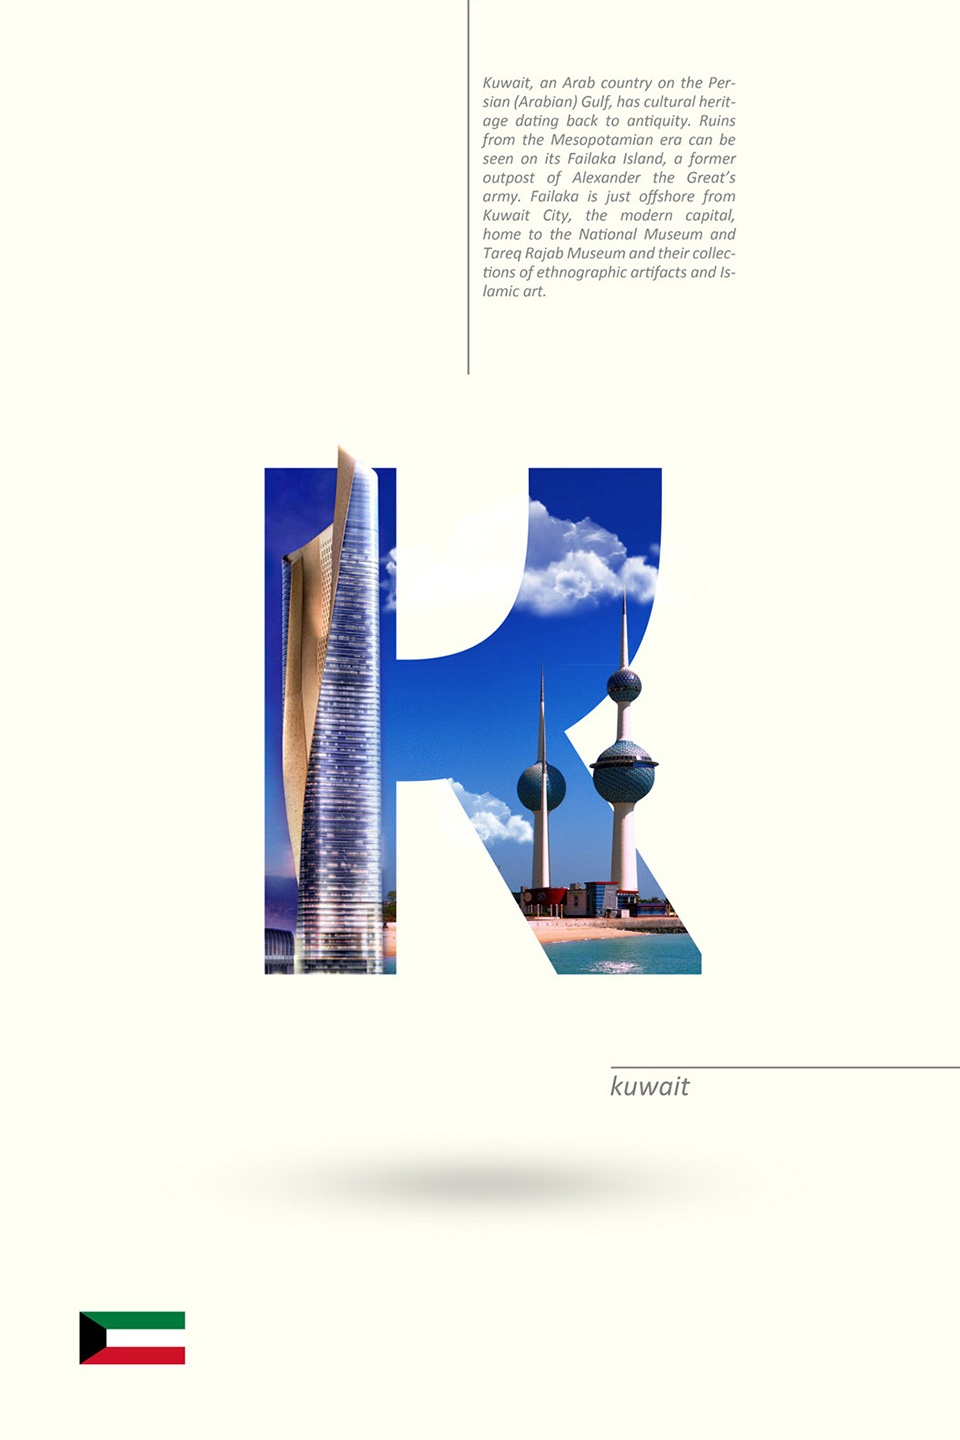 Beautiful Alphabet Series Of Countries And Their Iconic Landmarks - Kuwait